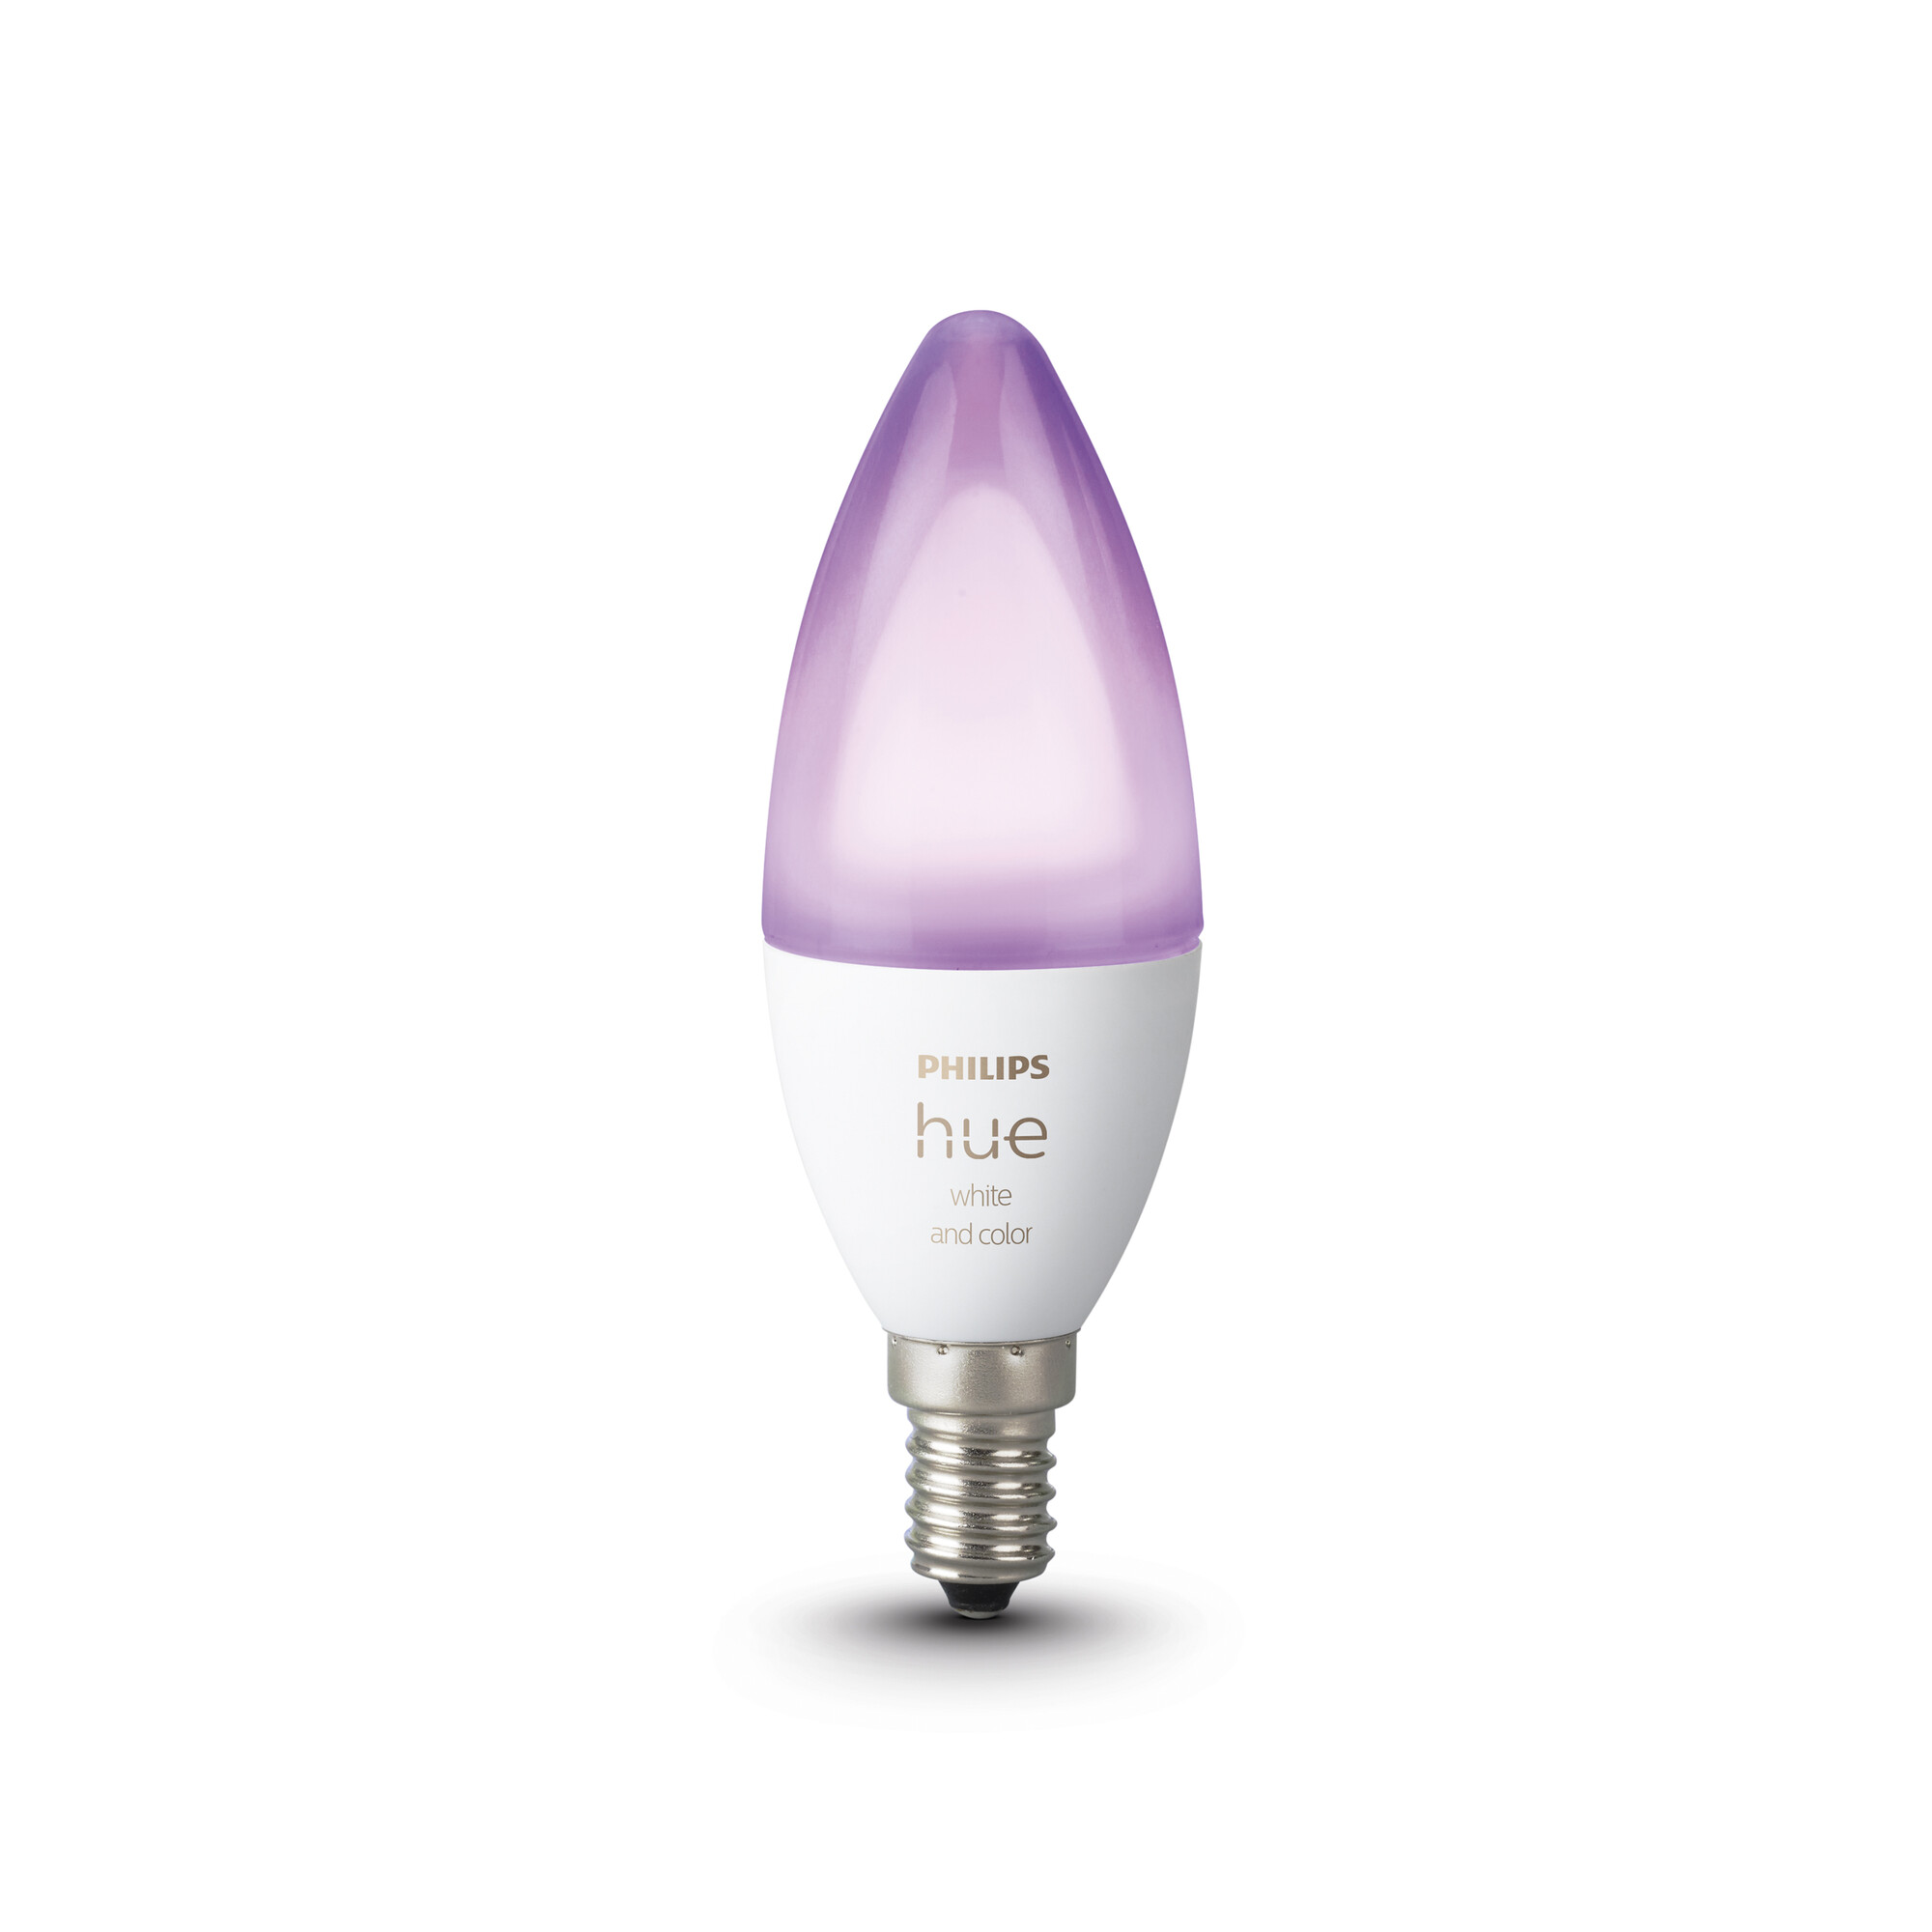 Philips HUE White and color ambiance E14 5,3W 470lm 2000K-6500K